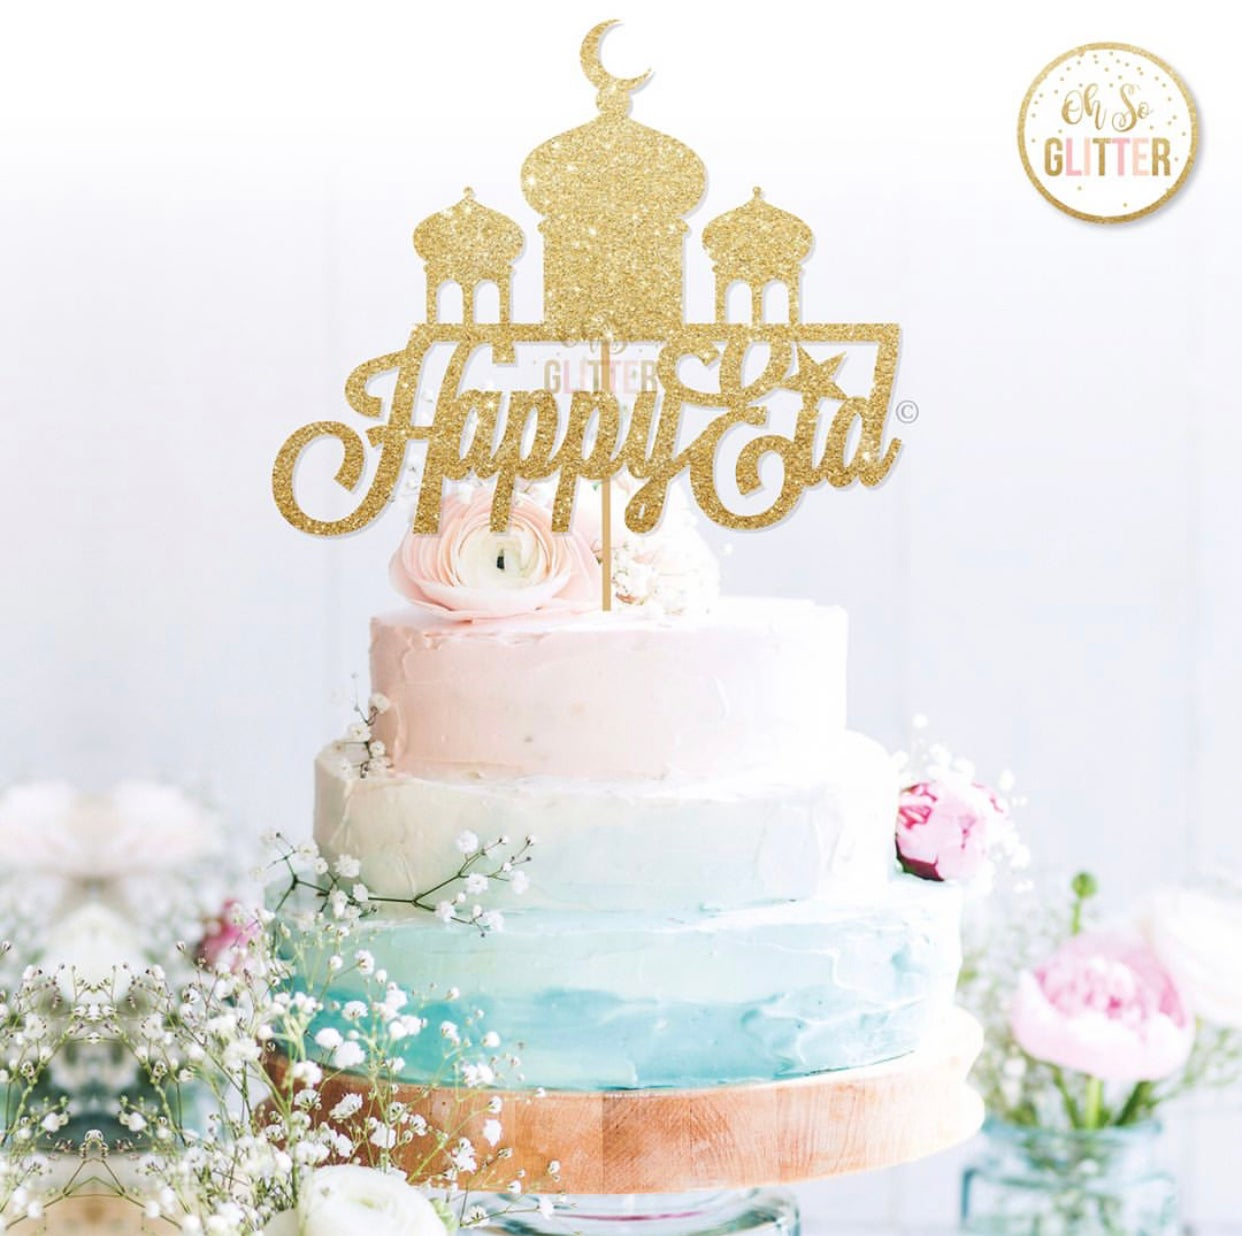 Image of Happy eid cake topper